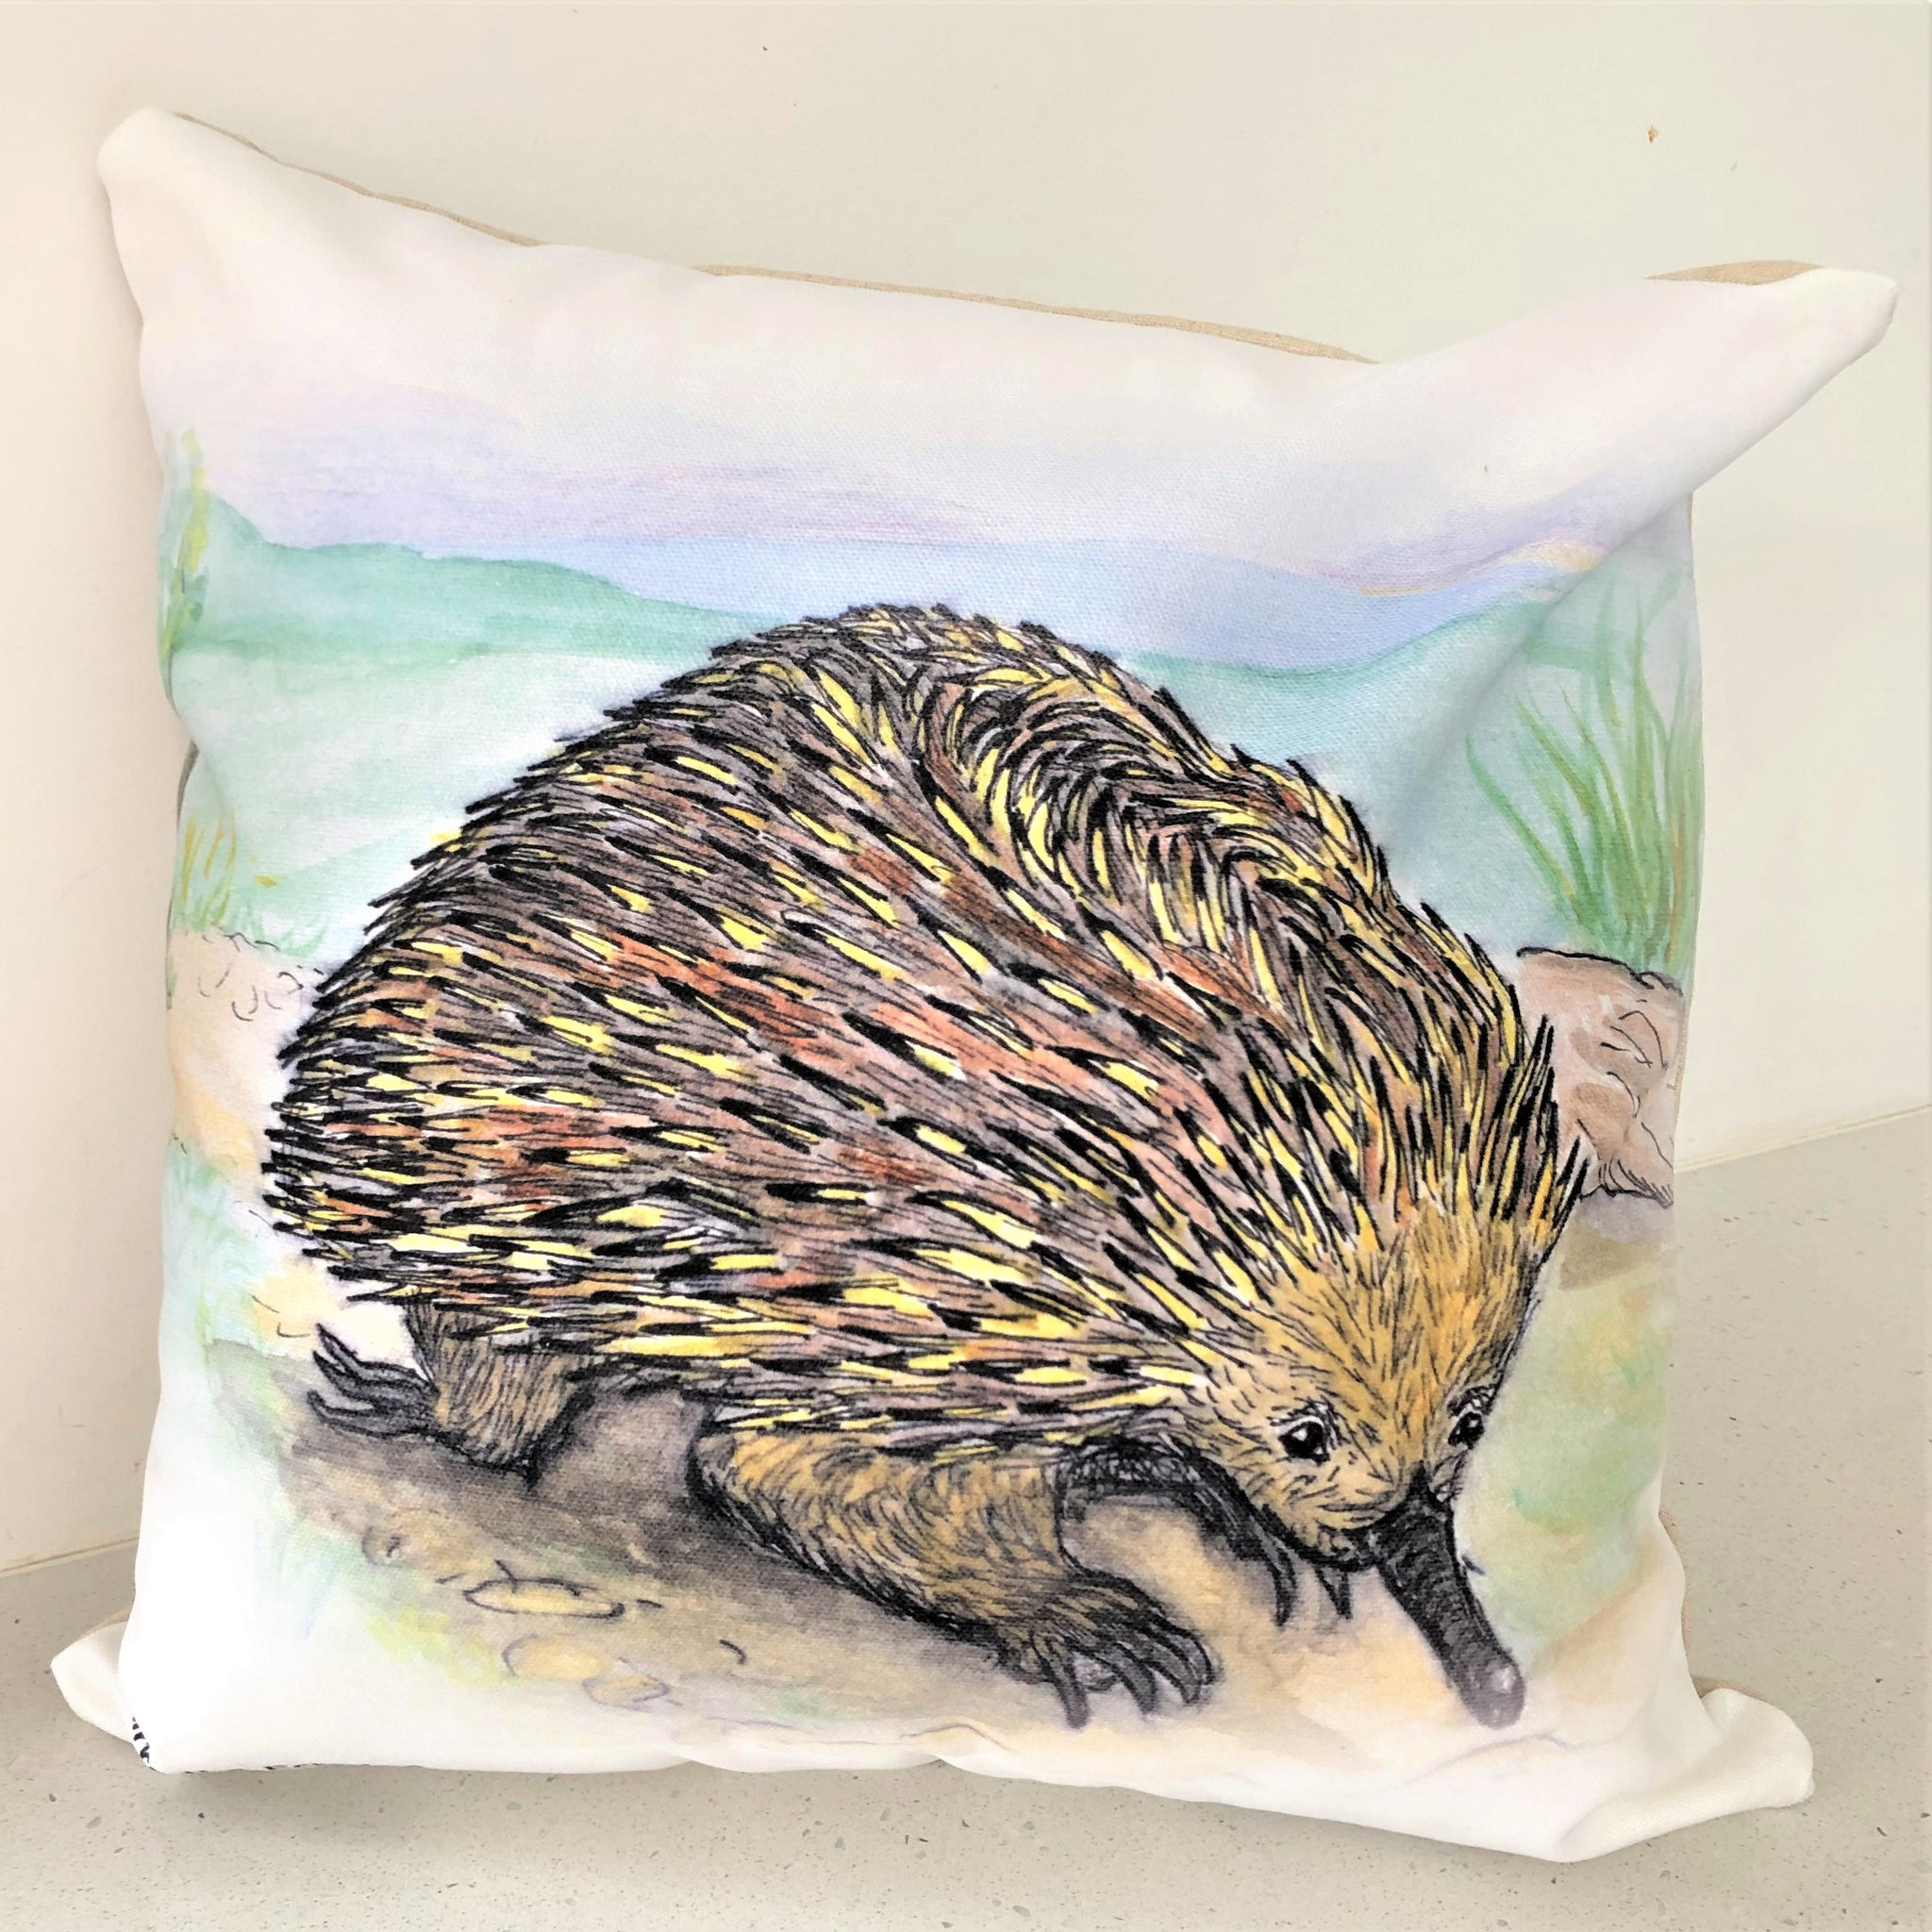 Cushion Cover - Kirra the Echidna